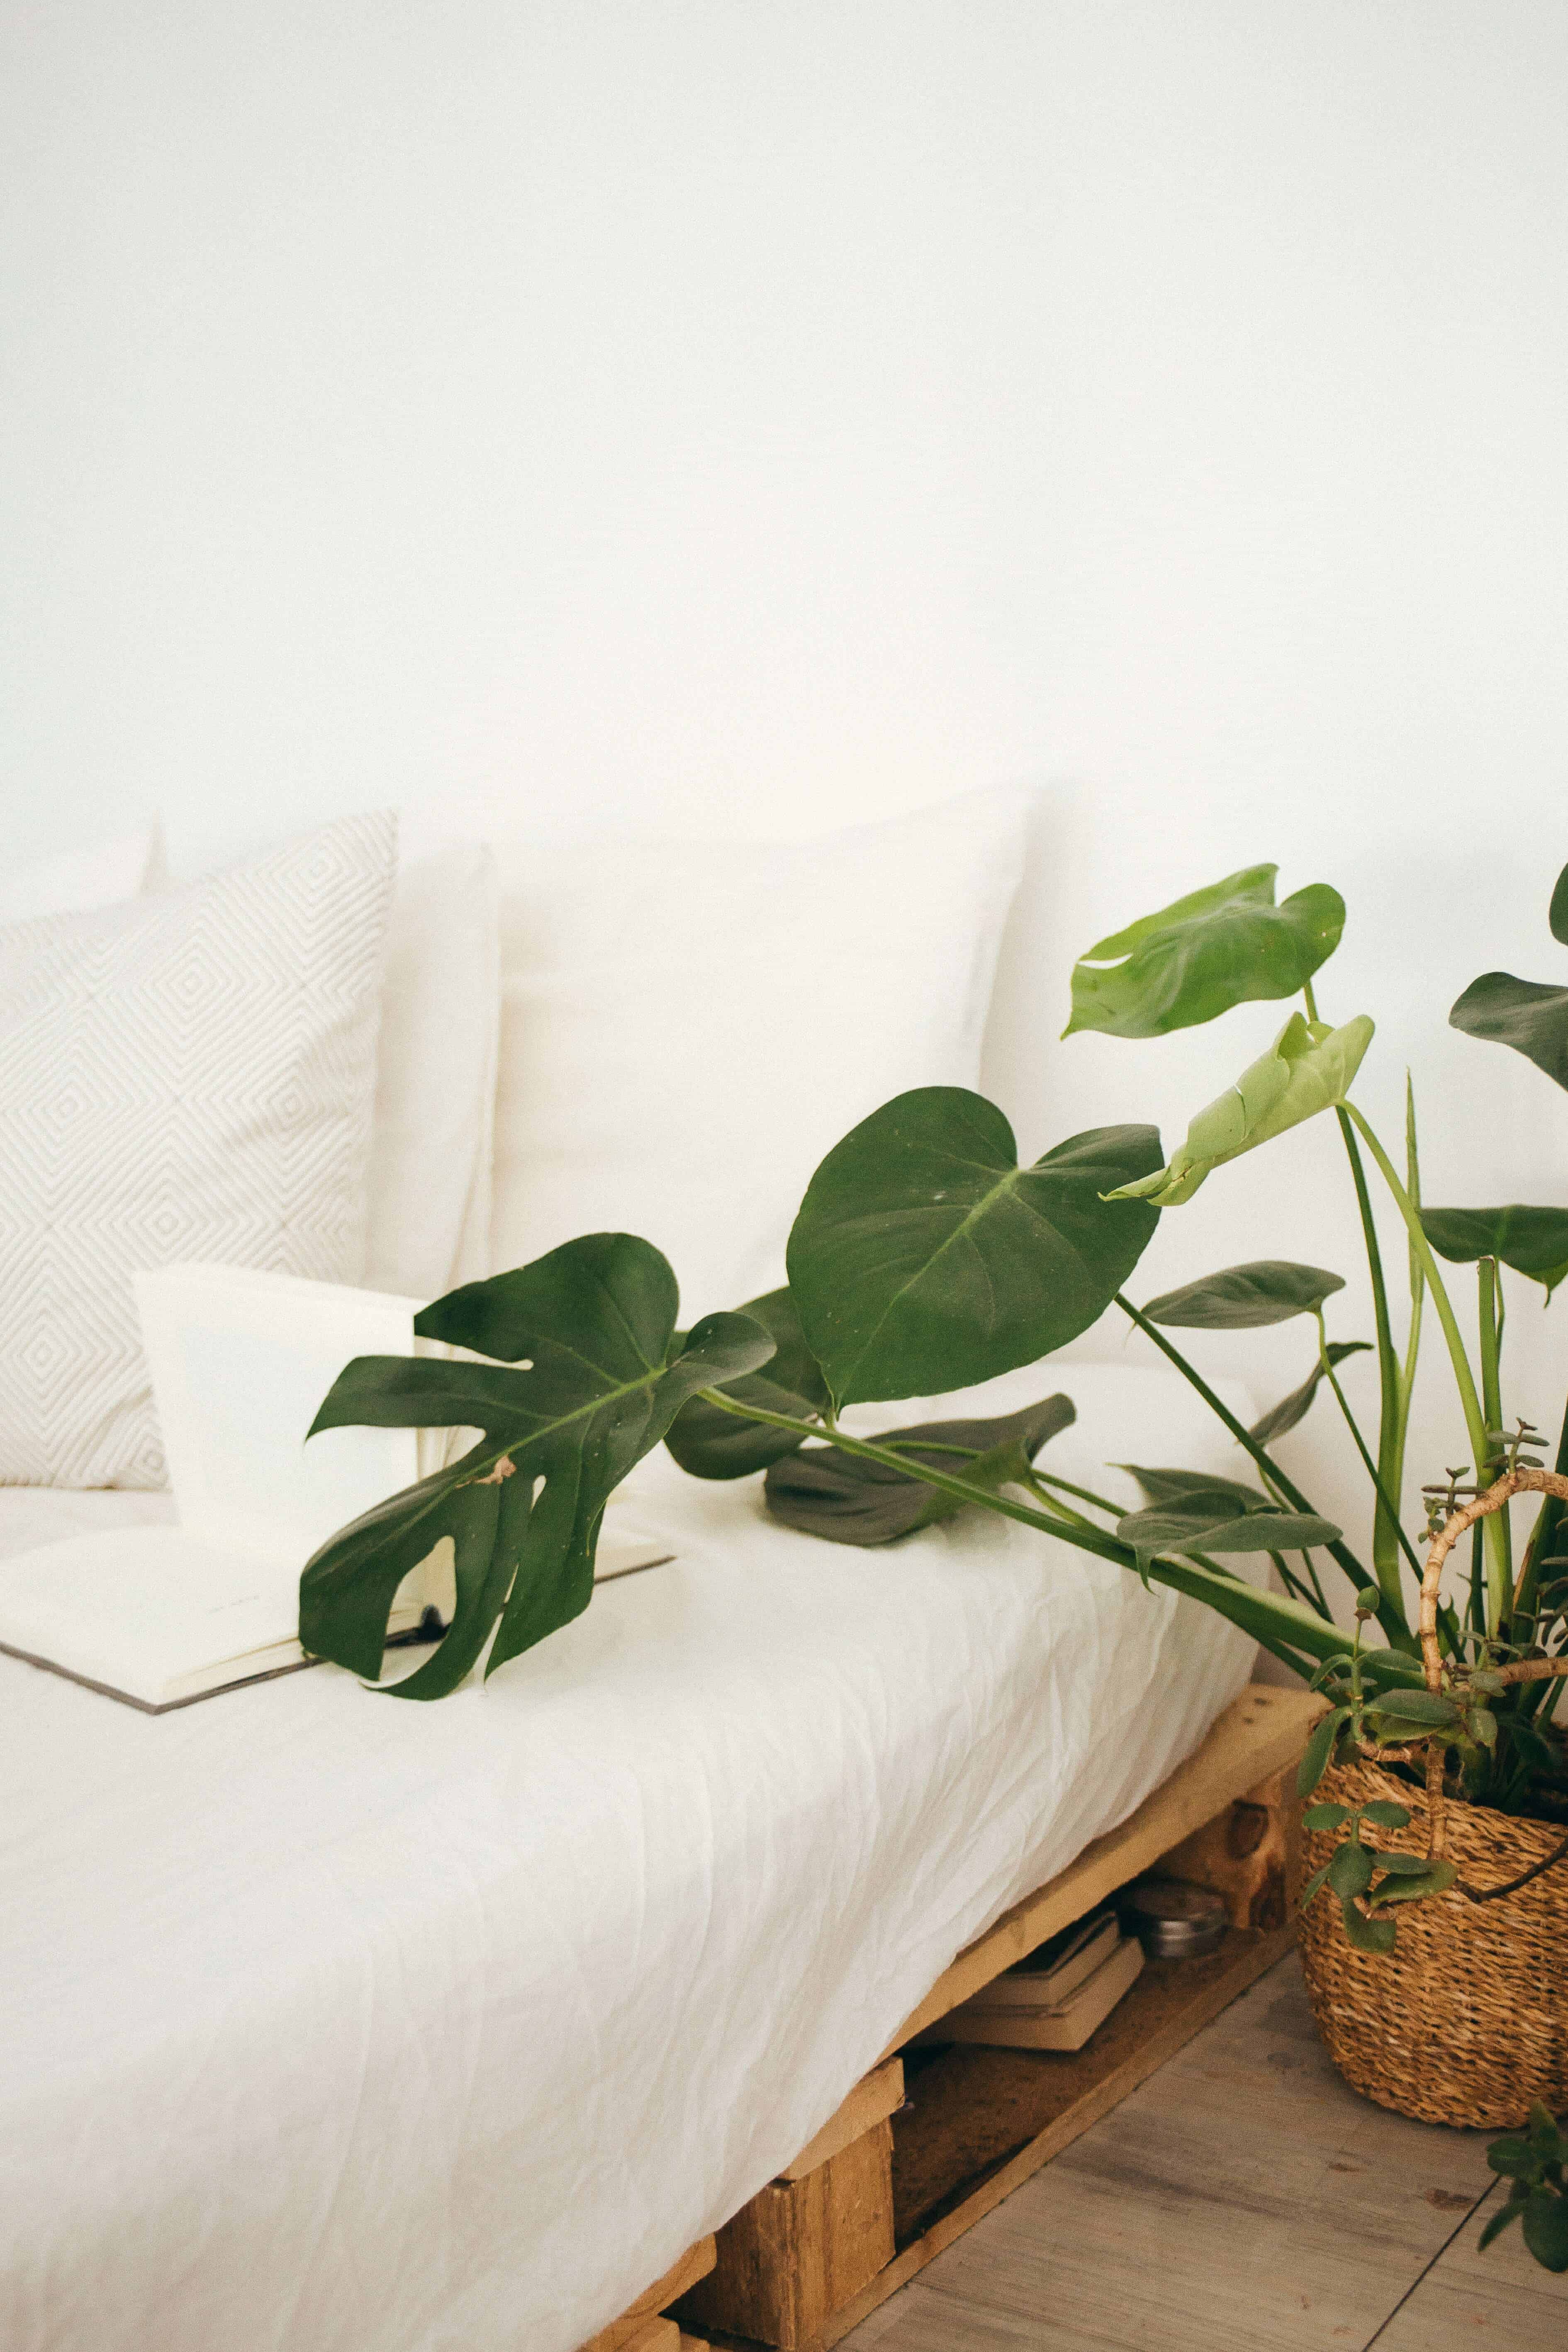 bed with white sheets, green plant on the side